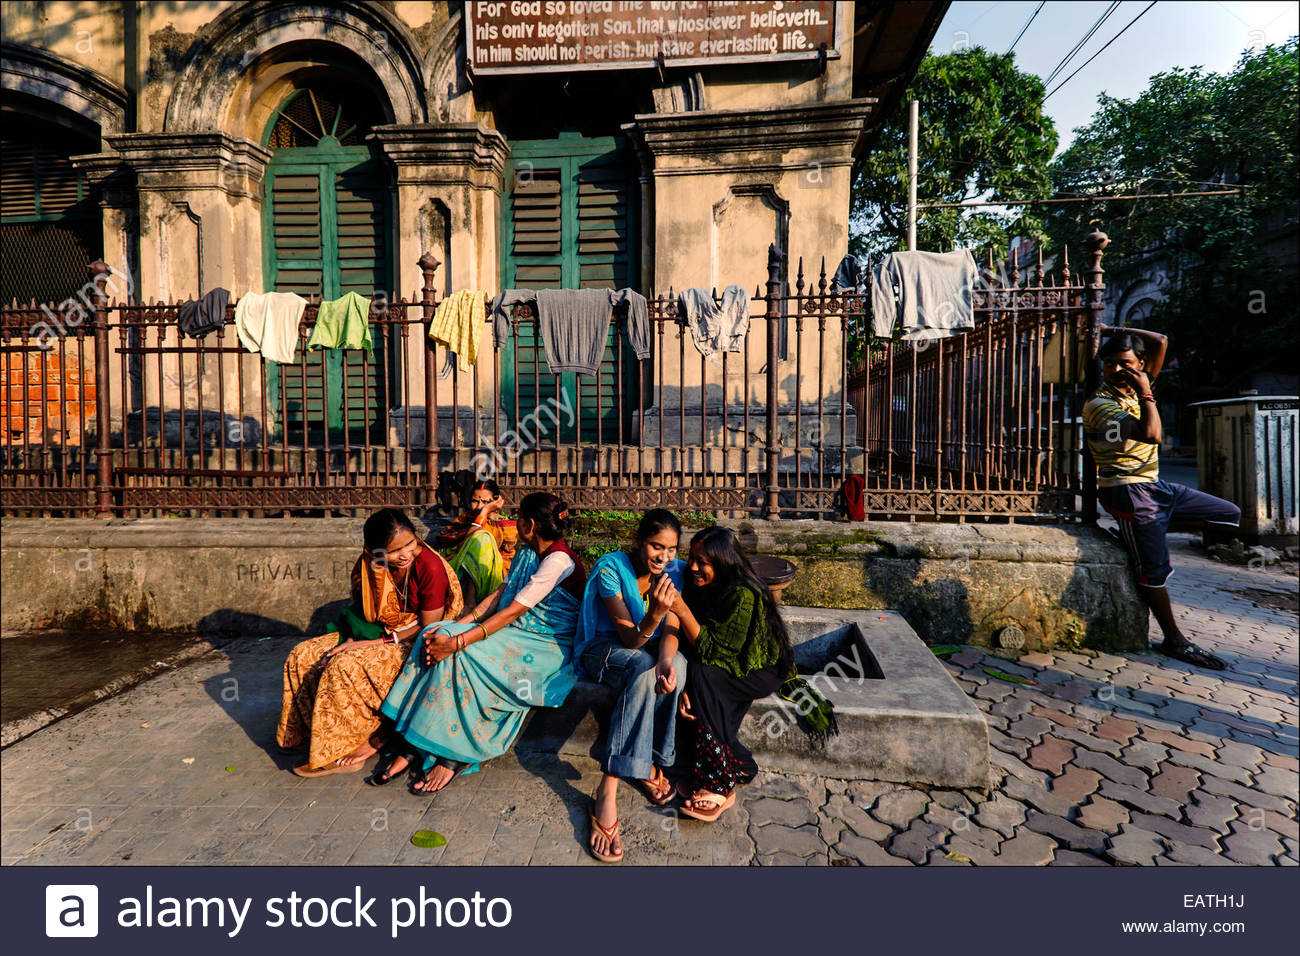 Kolkatans, some of them homeless pavement dwellers, languish on the street in front of Lee Memorial School. - Stock Image